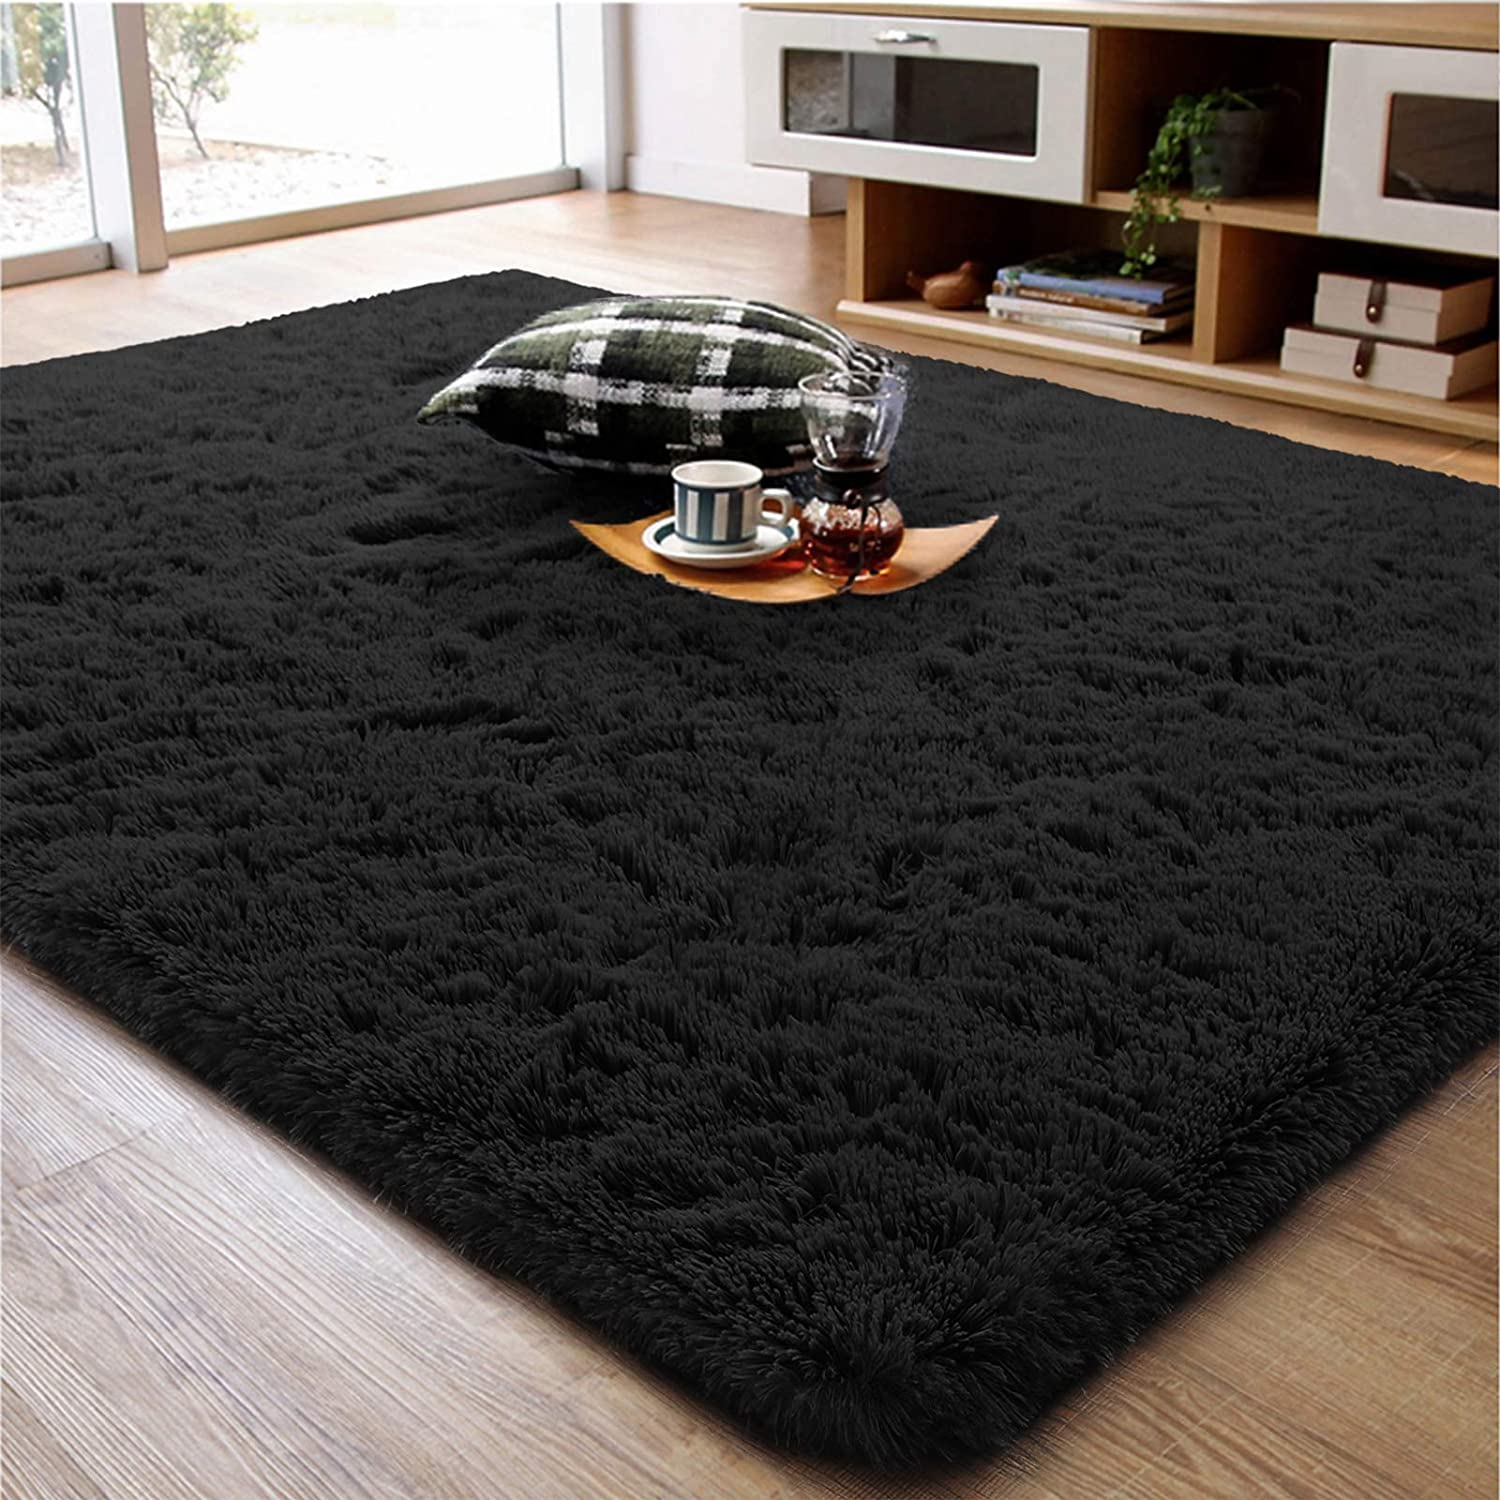 Soft Fluffy Area Rug for Living Room Bedroom, 5x8 Black Plush Shag Rugs with Non-Slip Backing, Fuzzy Shaggy Accent Carpets for Kids Girls Rooms, Modern Apartment Nursery Dorm Indoor Furry Decor